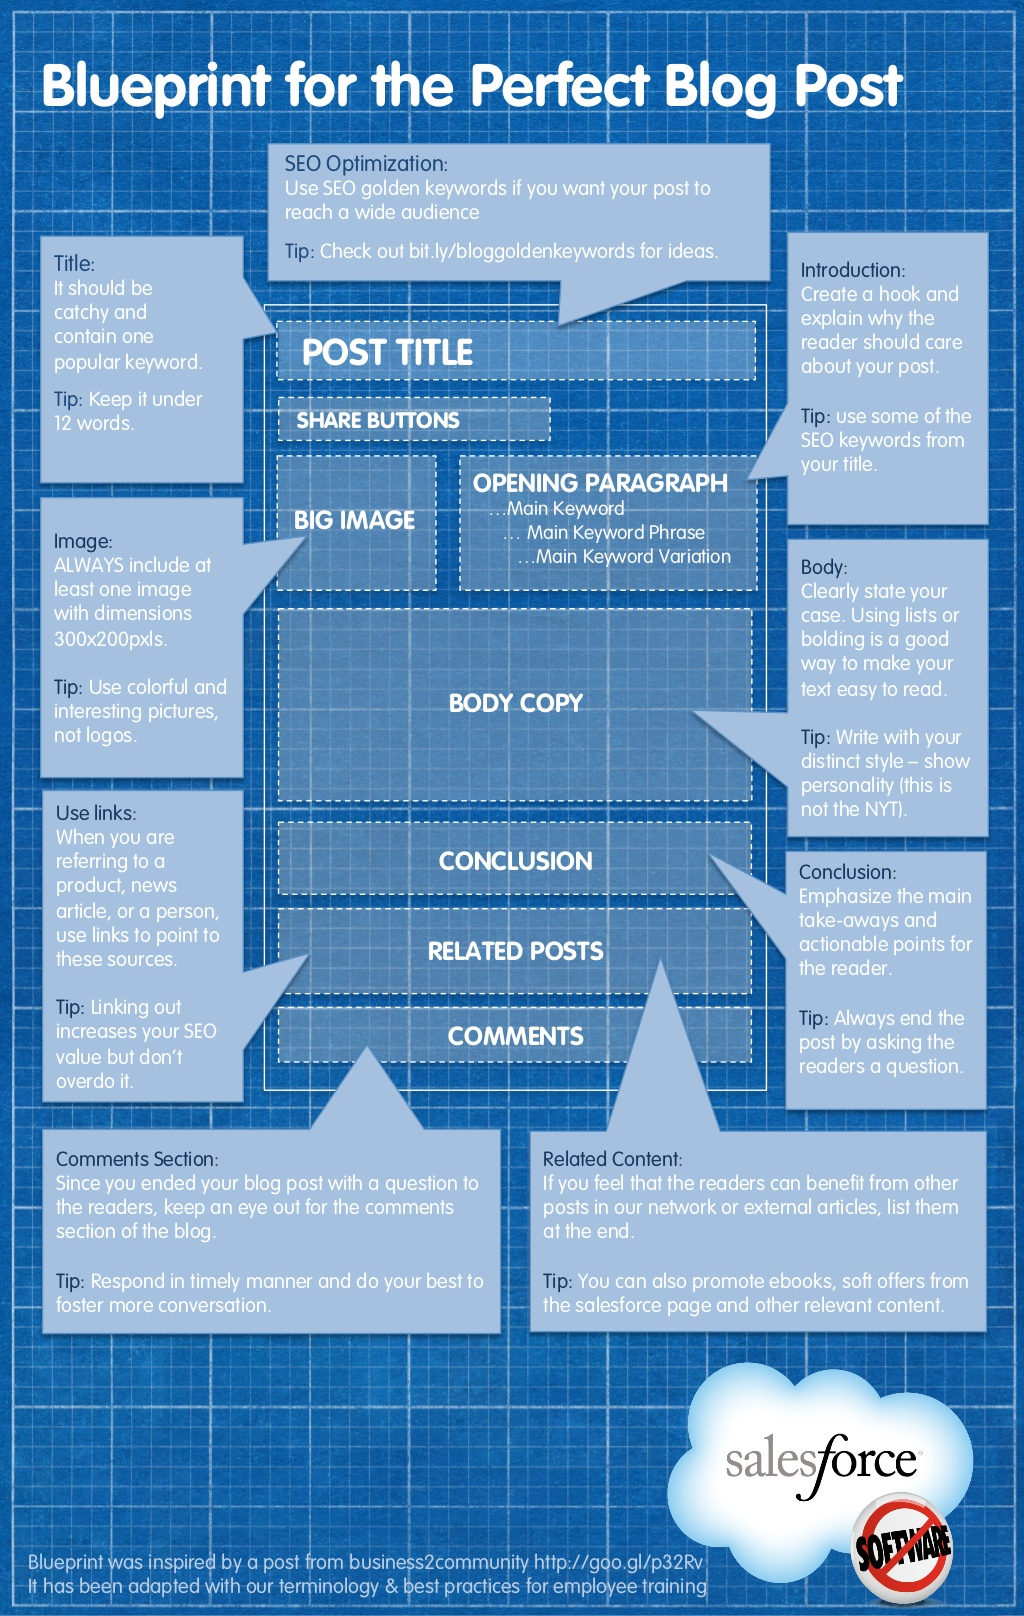 The Blueprint for the Perfect Blog Post (Infographic)